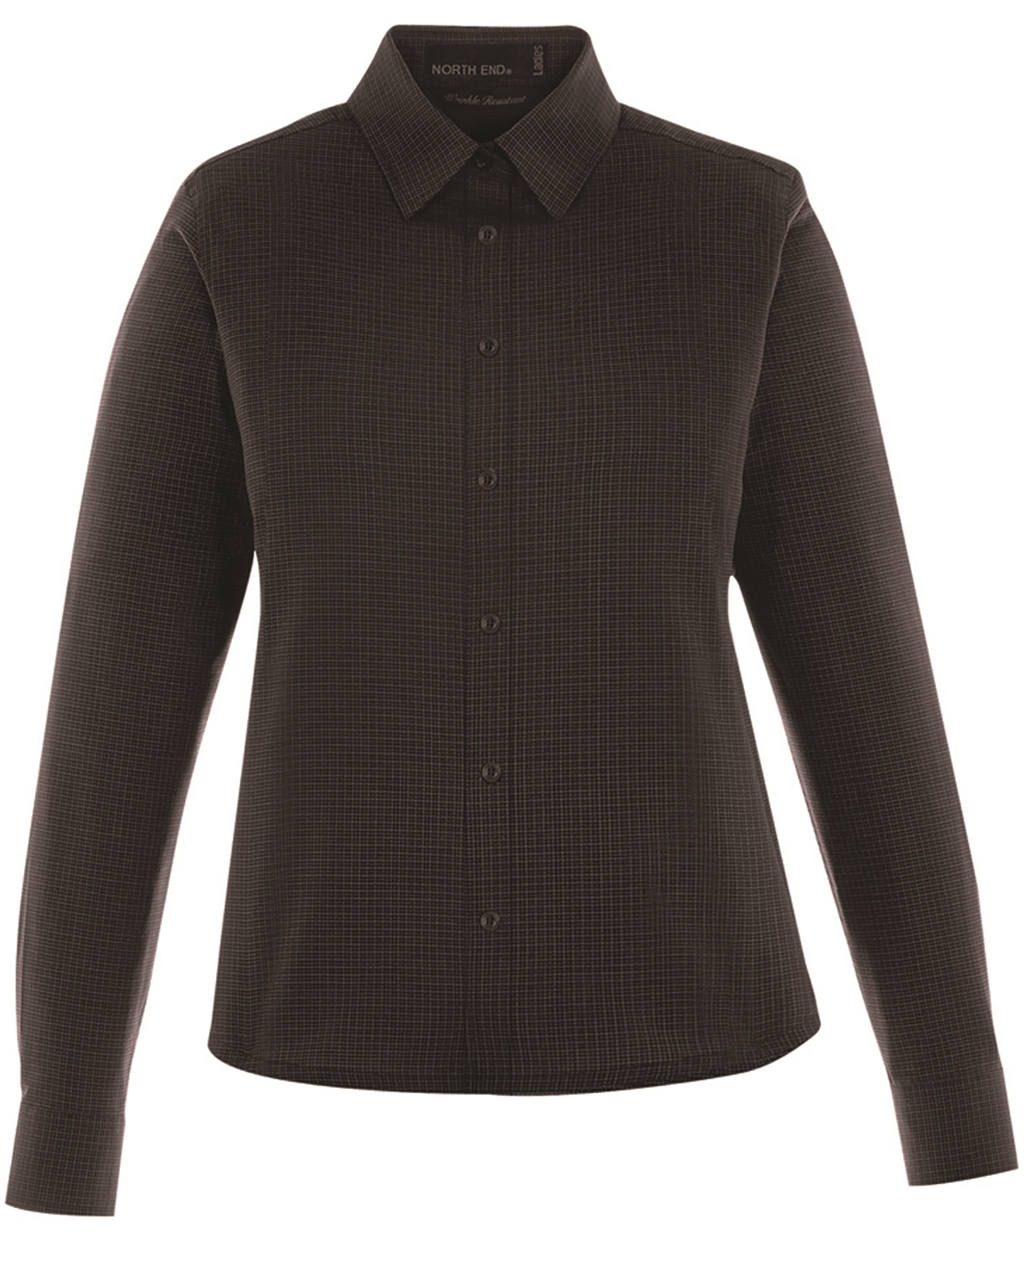 Picture of North End Ladies Paramount Wrinkle-Resistant Checkered Shirt